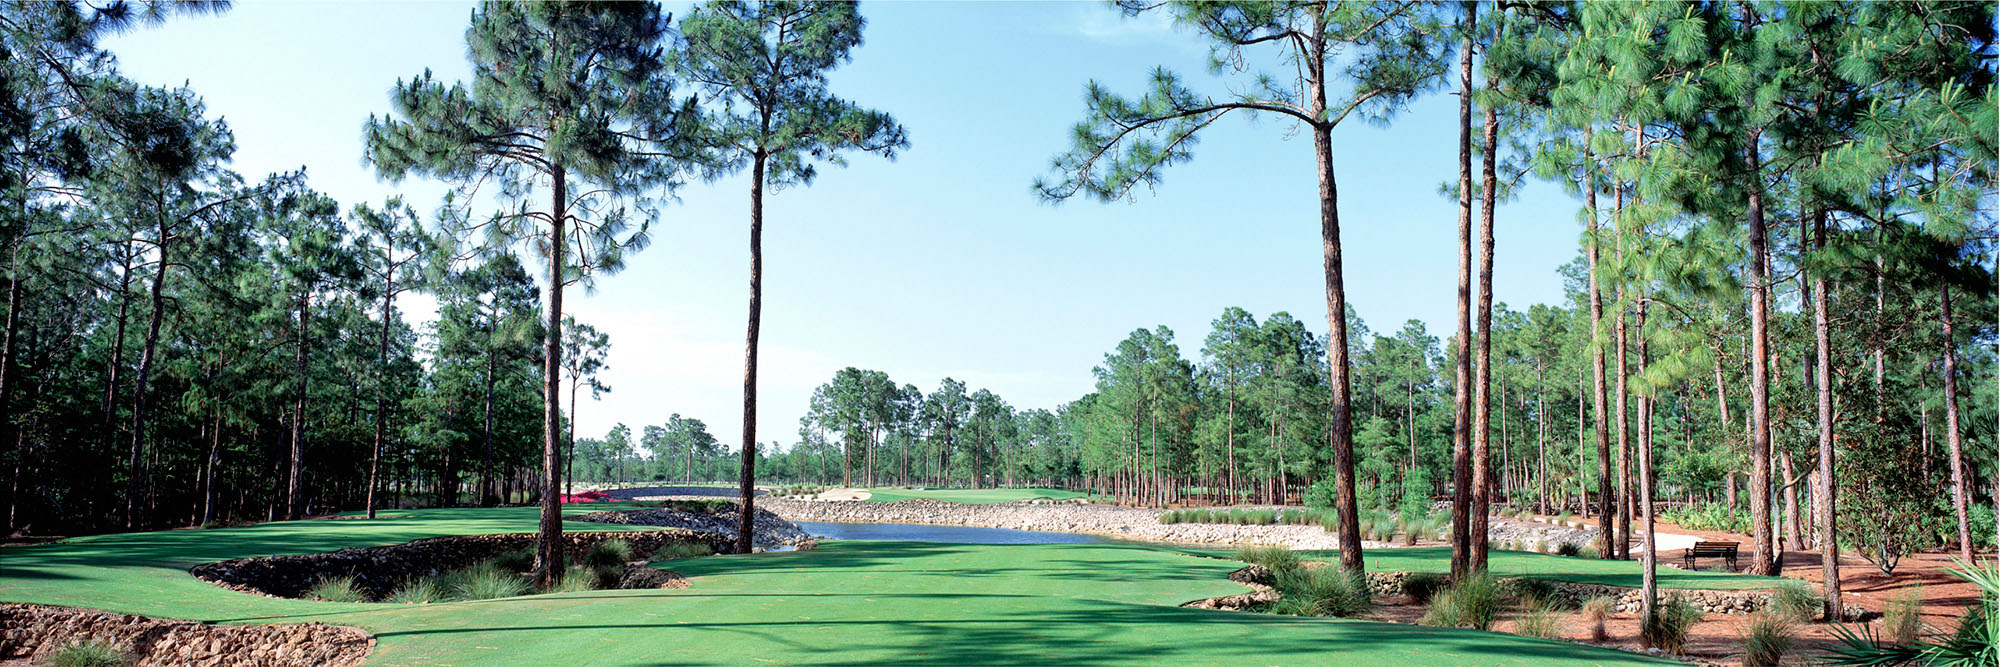 Golf Course Image - Naples National No. 3